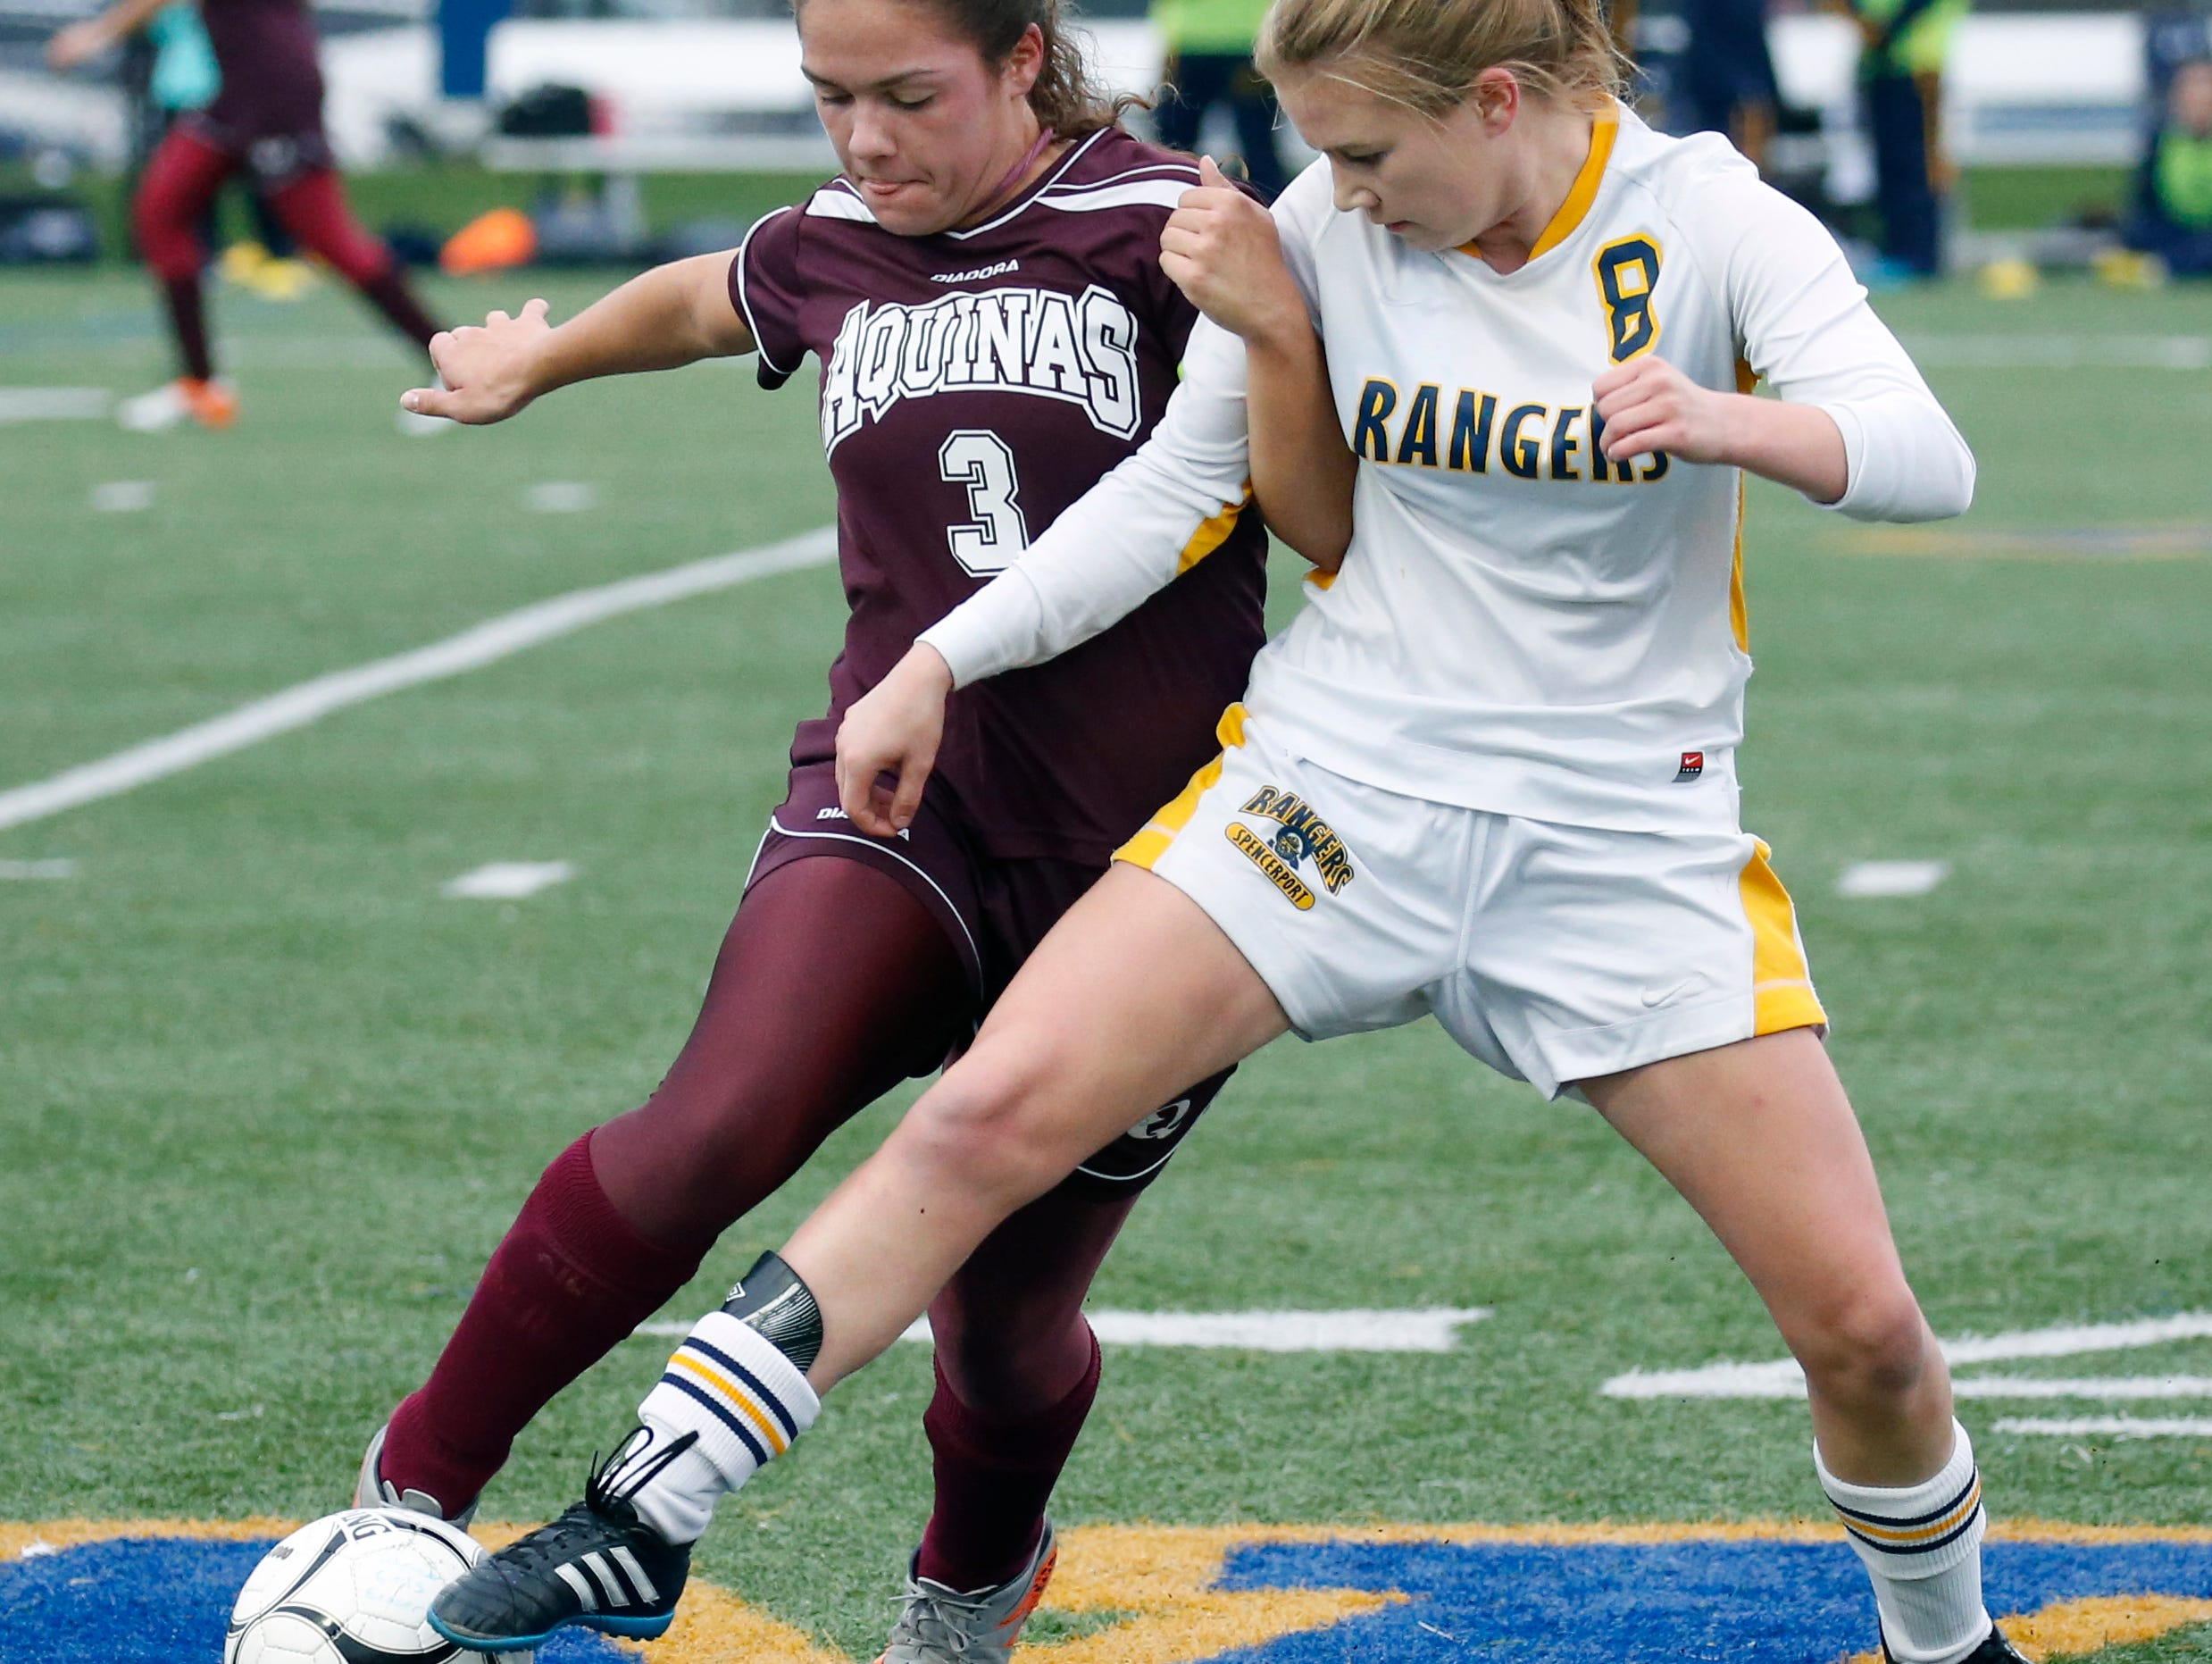 Aquinas' Gina DelMonche and Spencerport's Leah Wengender battle for the ball in the first half at Webster Schroeder High School.